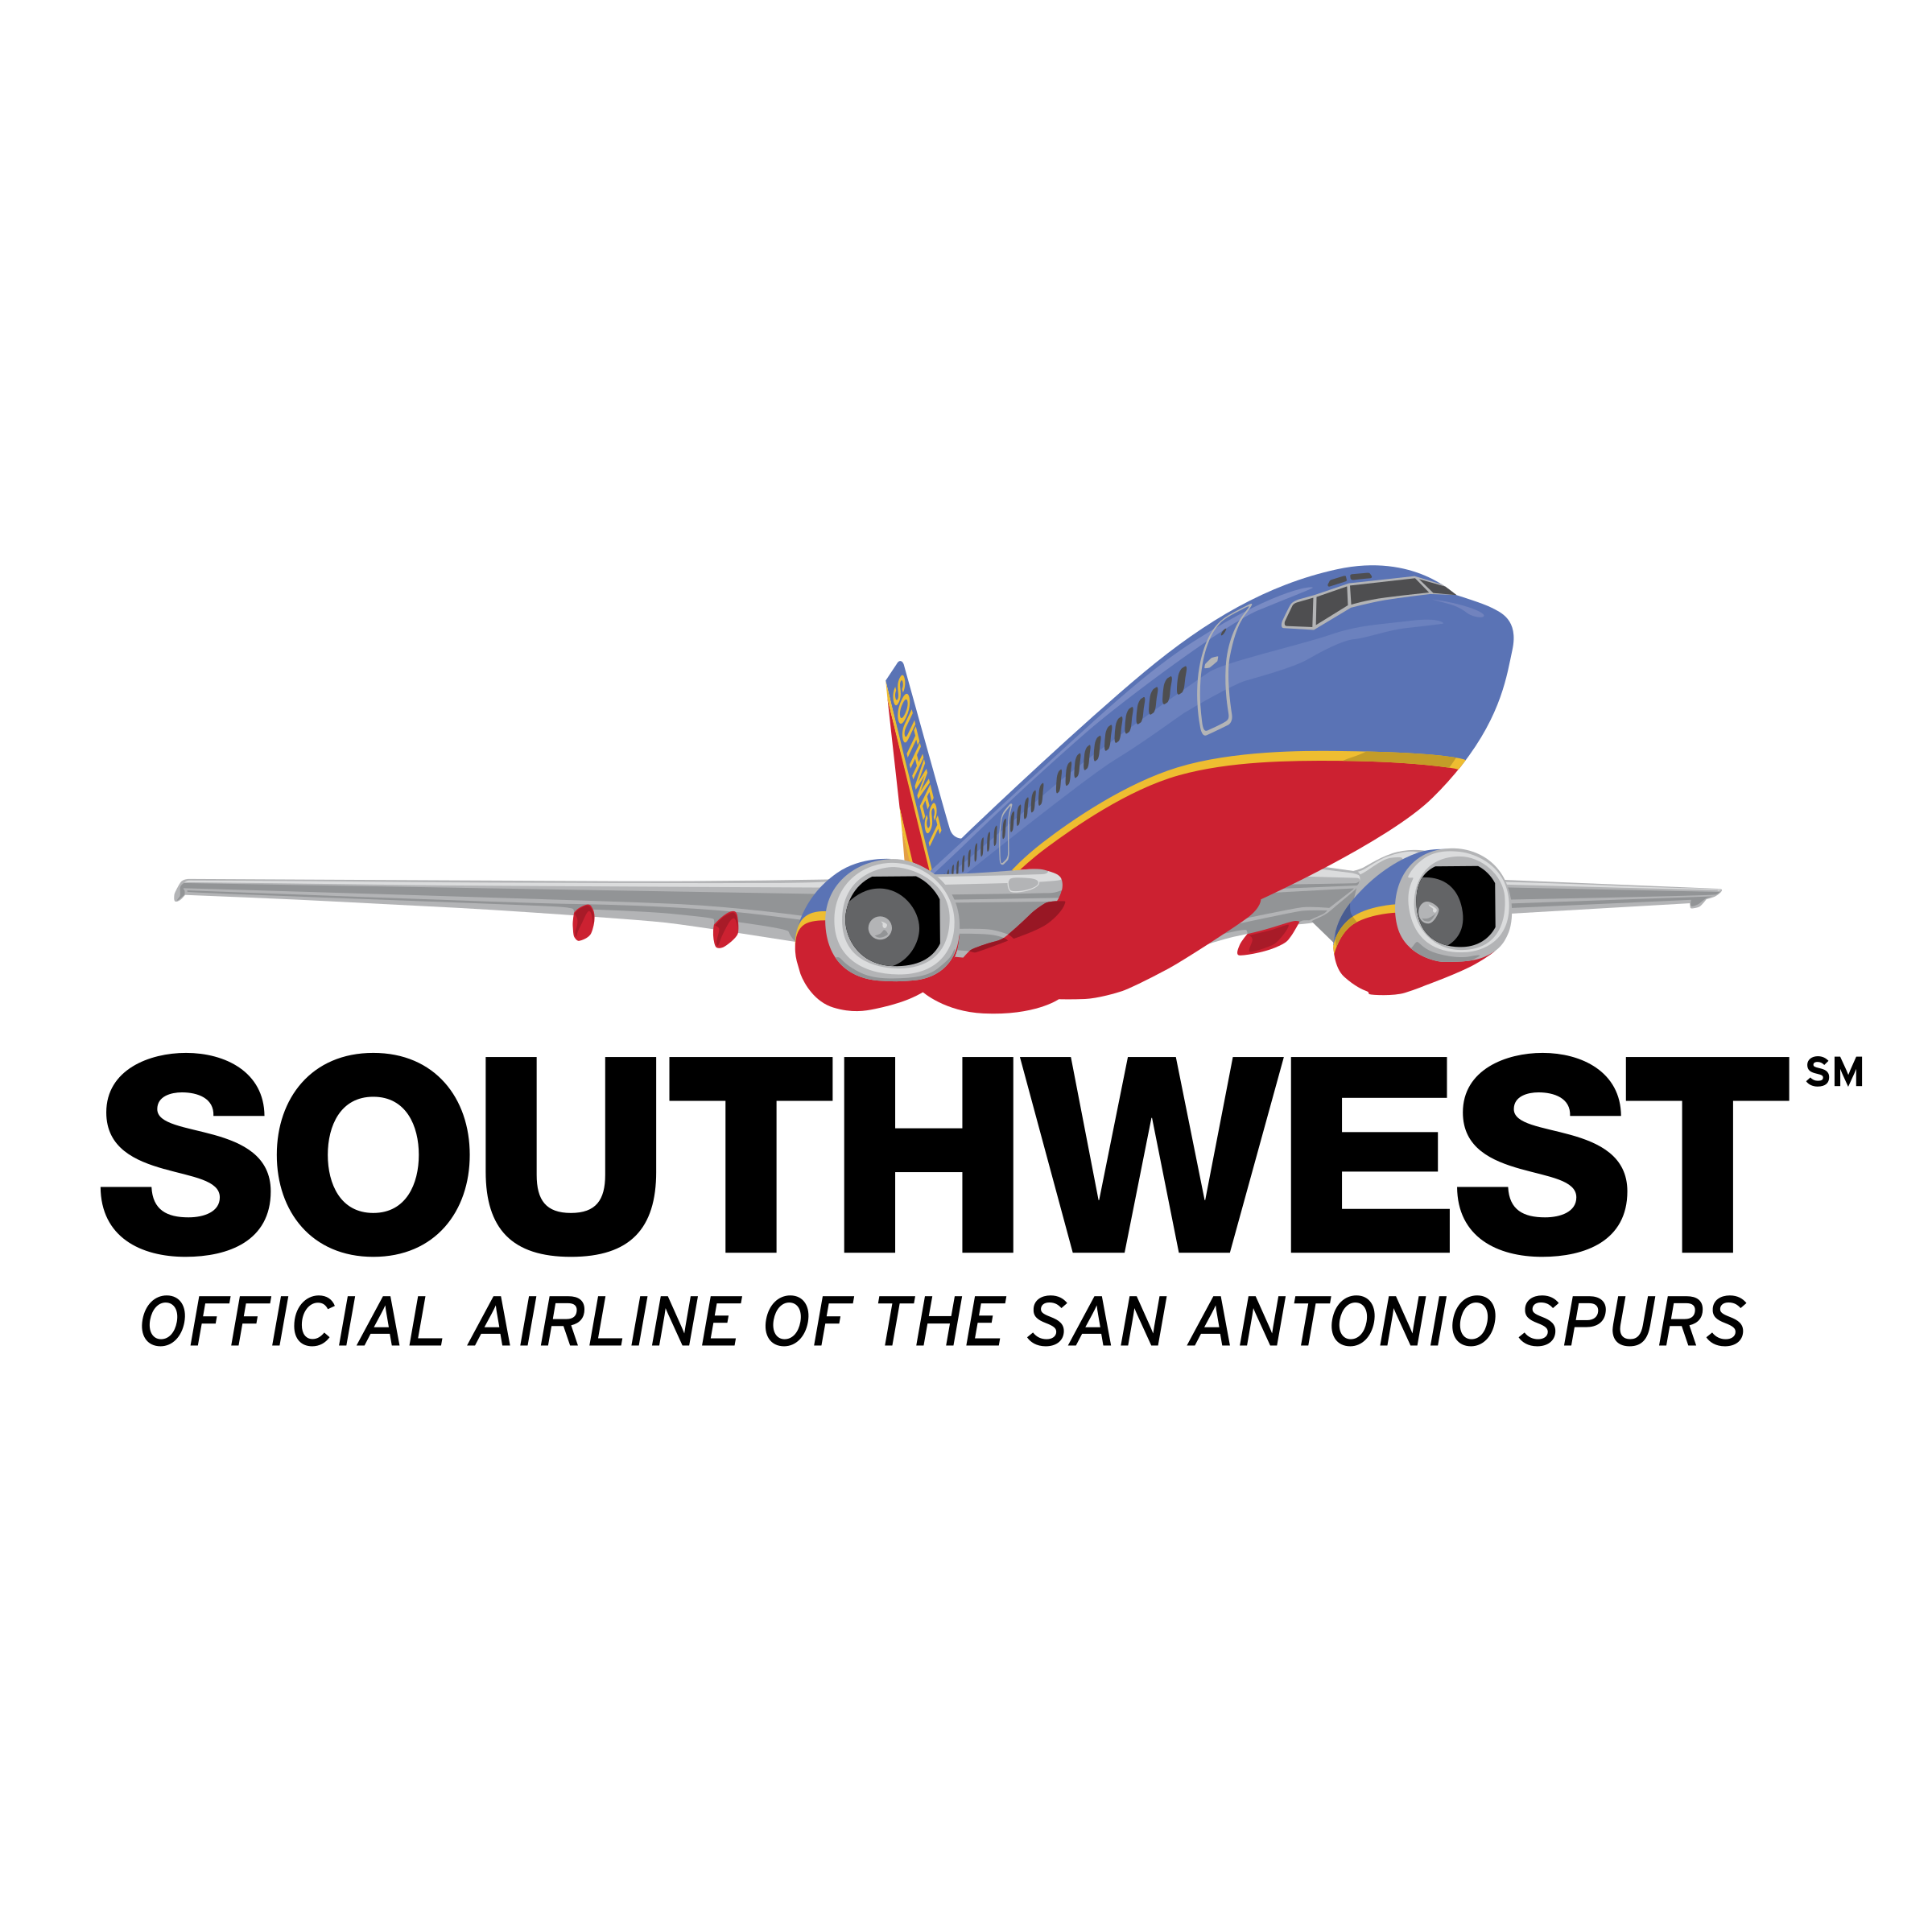 South west air png. Southwest airlines logo transparent